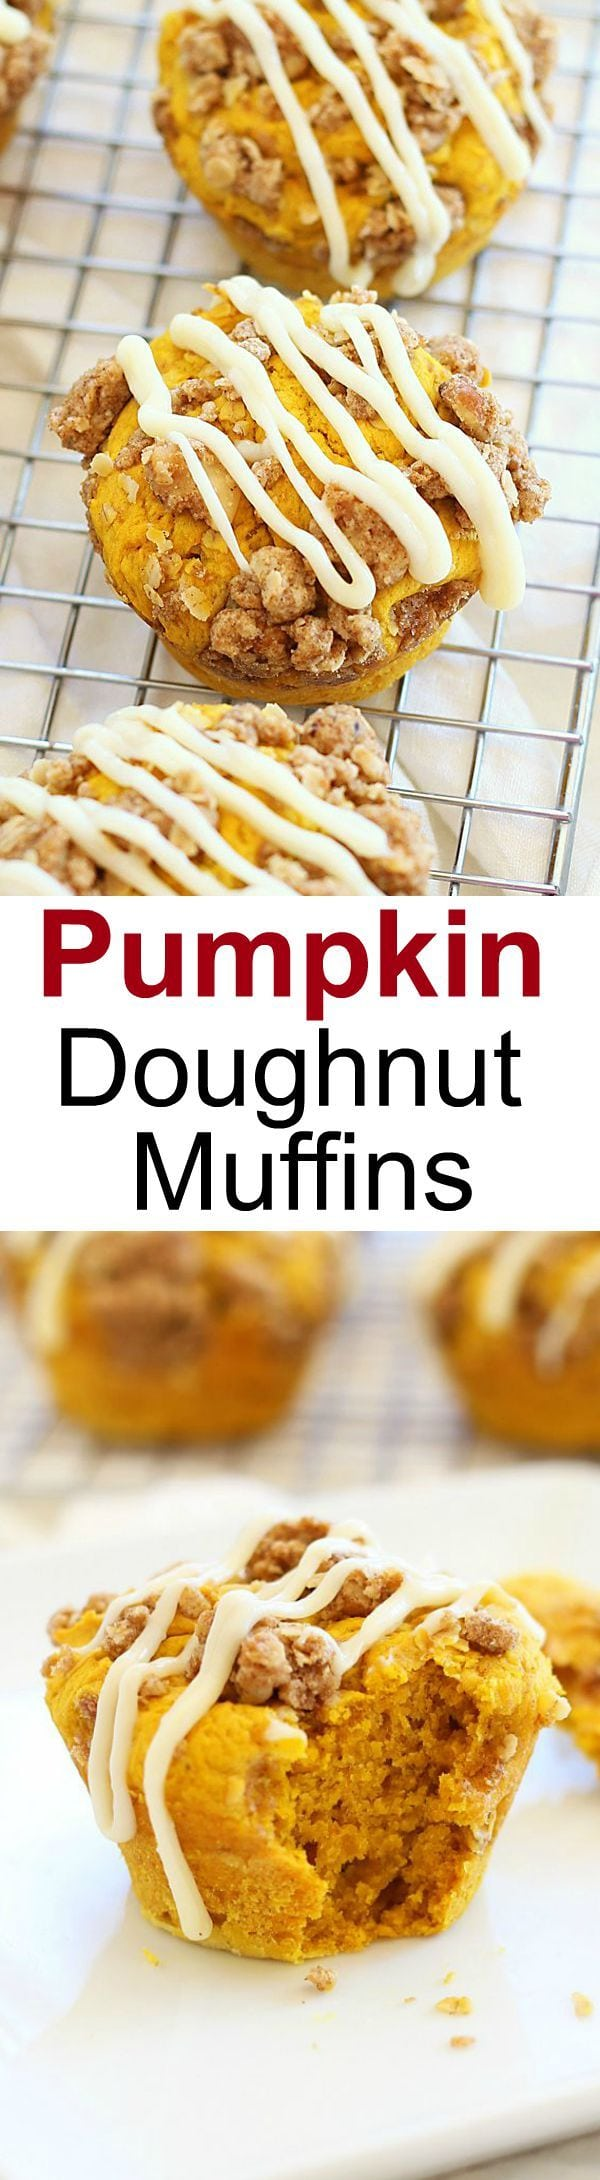 Pumpkin Doughnut Muffins – amazing muffins topped with cream cheese icing over a sweetened crumble. Easy recipe and fail-proof recipe!   rasamalaysia.com